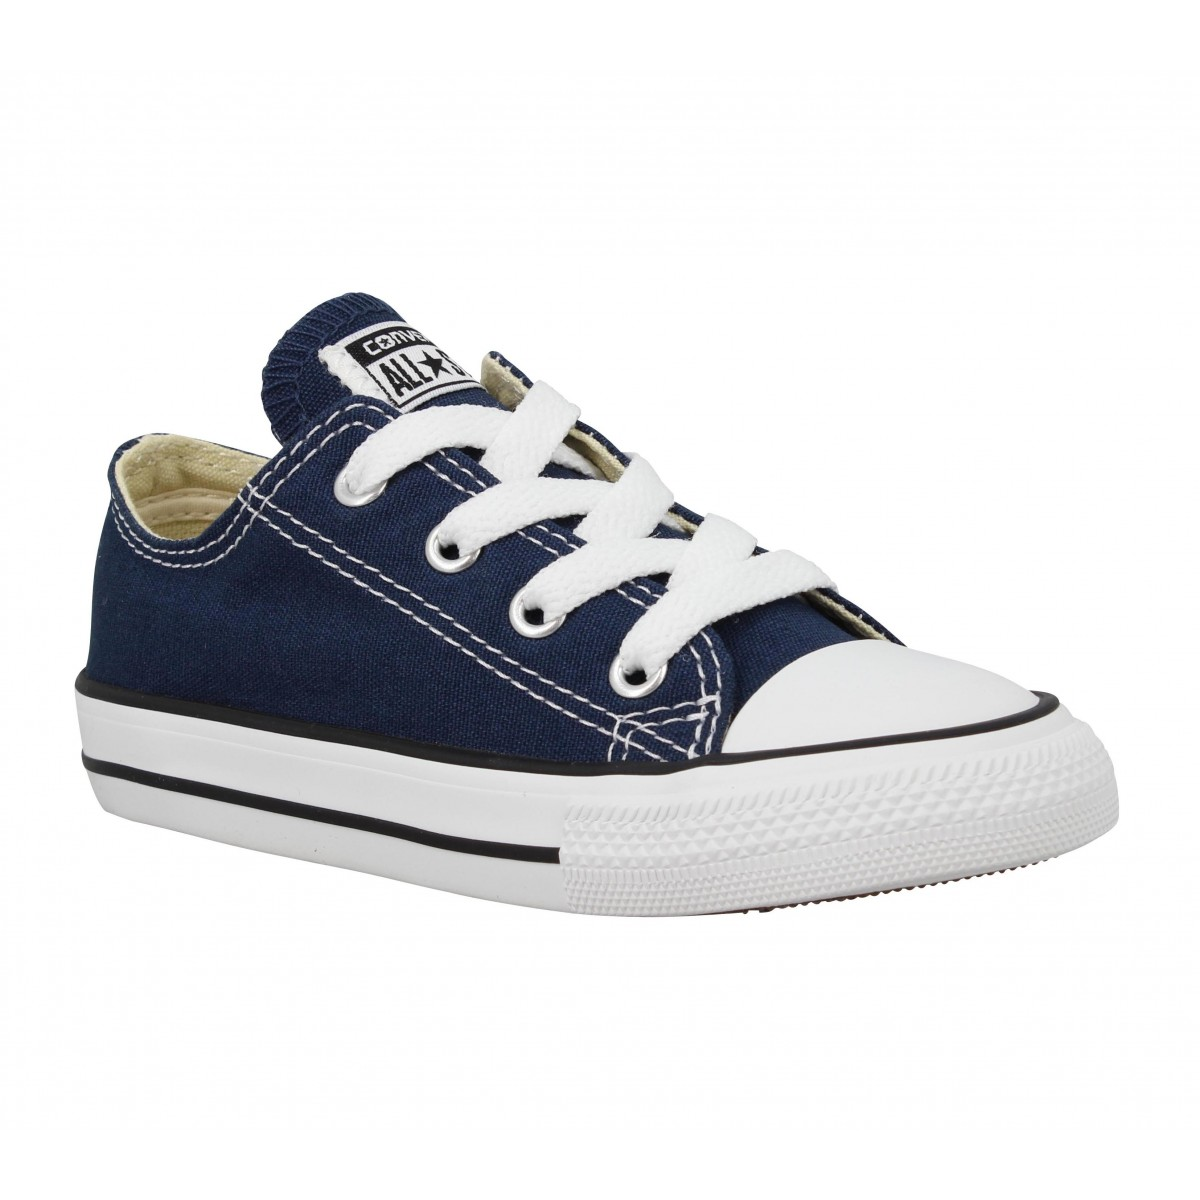 Baskets CONVERSE Chuck Taylor All Star toile Enfant Marine